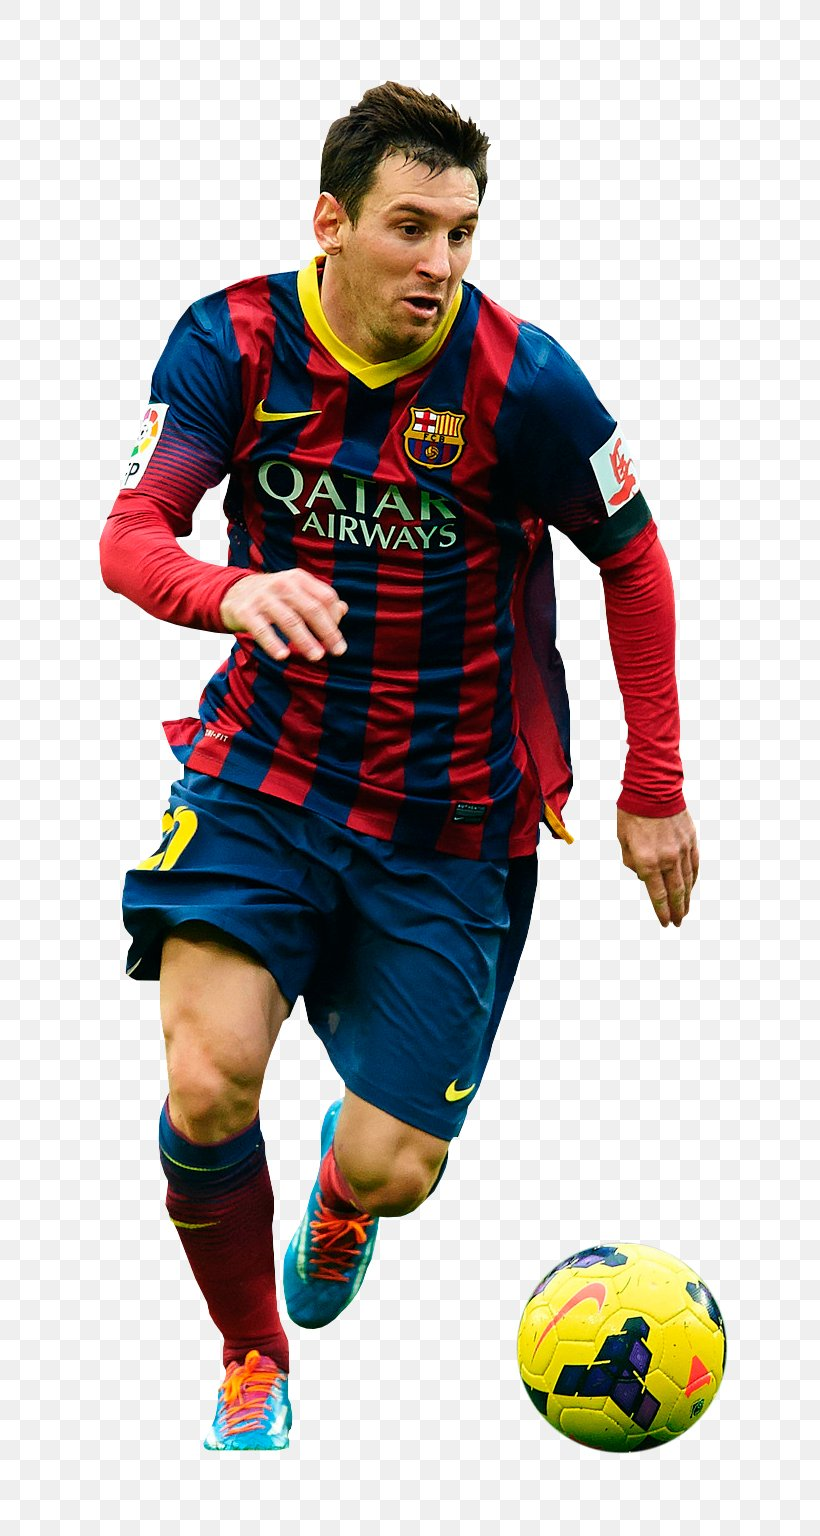 Lionel Messi 2014 FIFA World Cup Argentina National Football Team FC Barcelona Football Player, PNG, 770x1536px, 2014 Fifa World Cup, Lionel Messi, Argentina National Football Team, Ball, Dani Alves Download Free